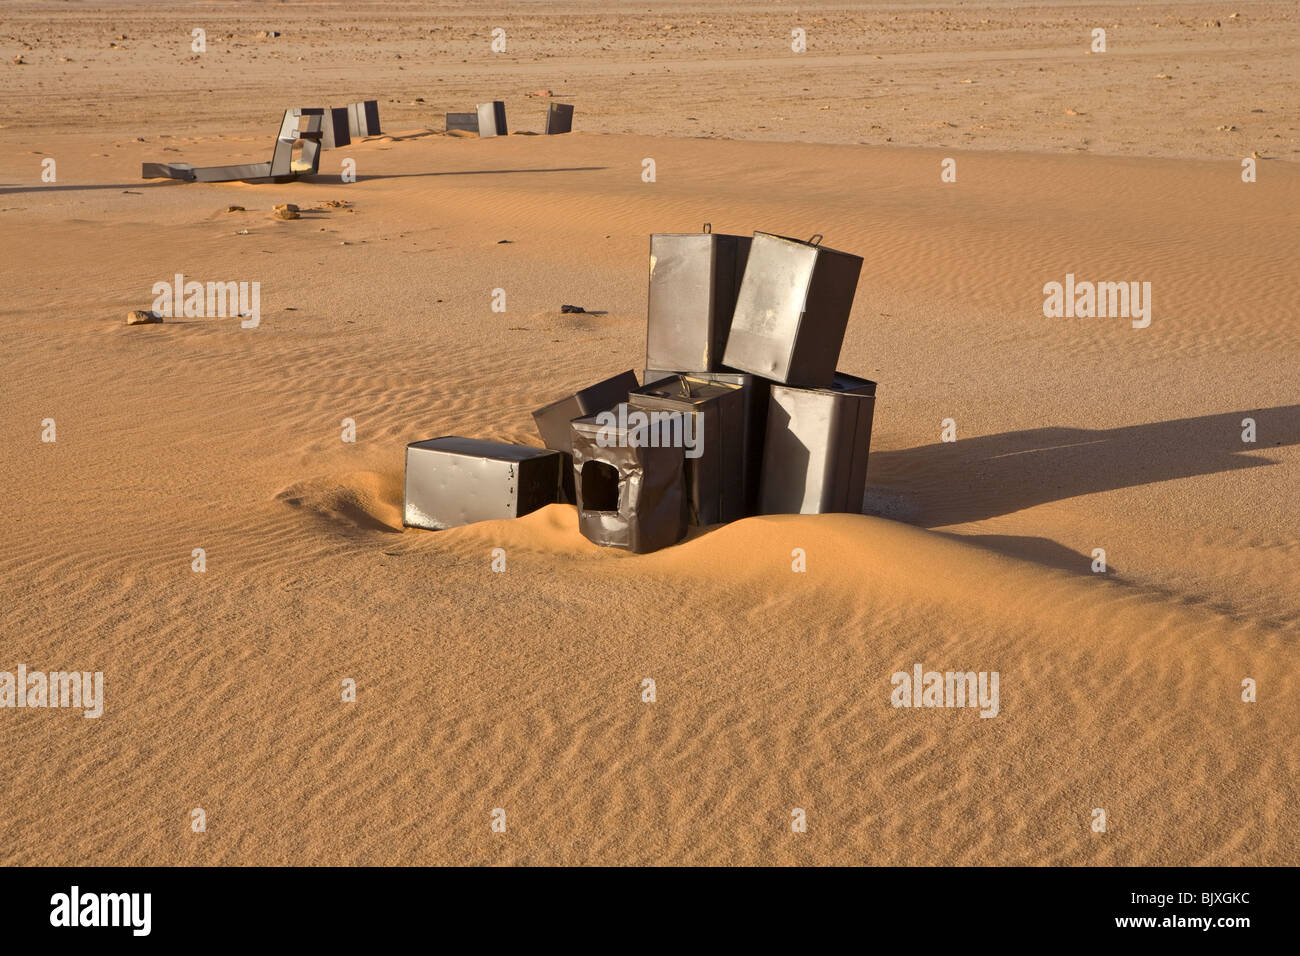 Fuel cans close to the abandoned Ford 30 CWT CMP truck from 1941/42 era sinking in the sand of the Western Desert, - Stock Image